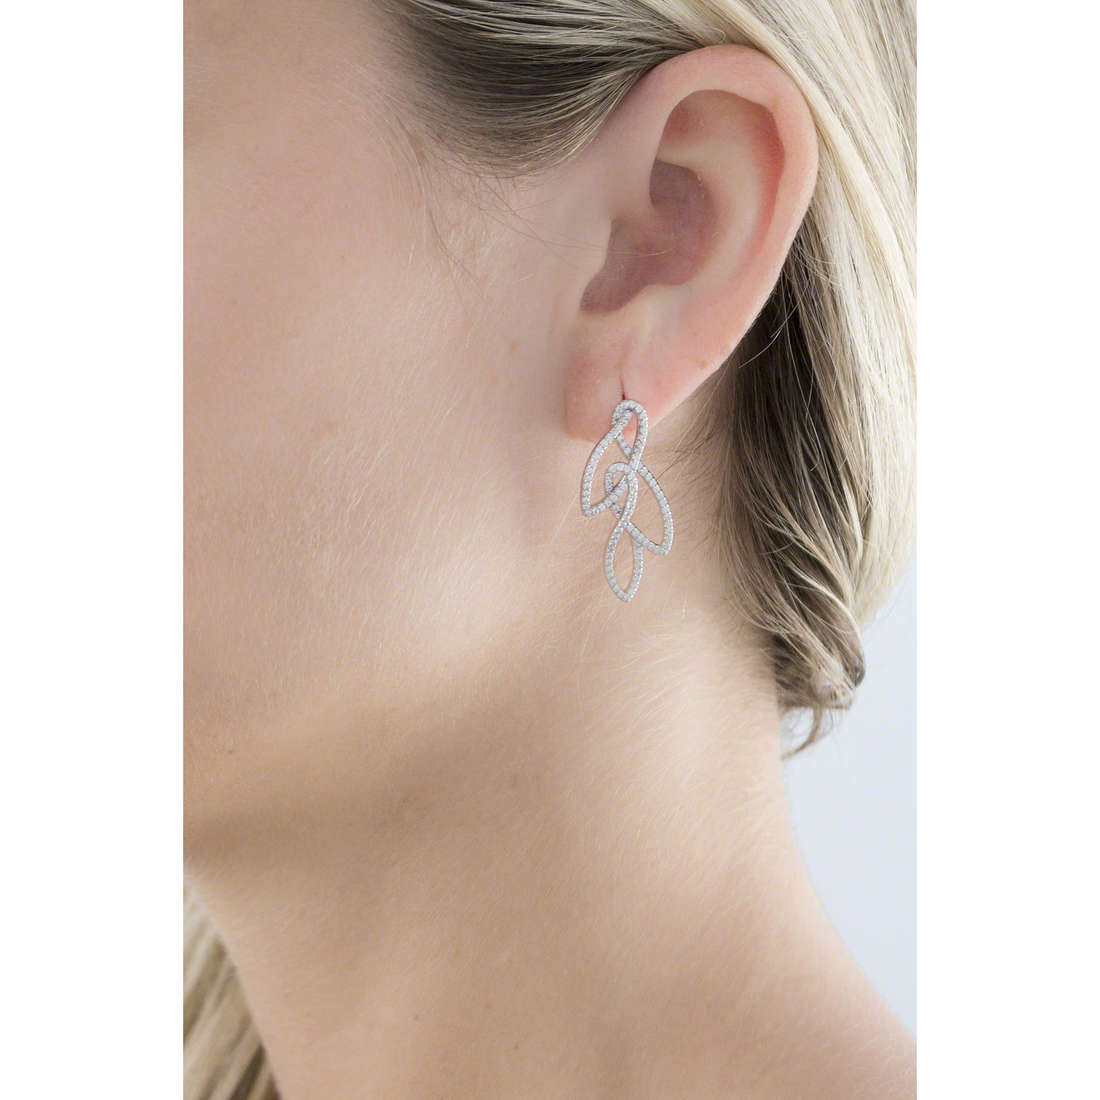 Morellato earrings 1930 Michelle Hunziker woman SAHA11 photo wearing